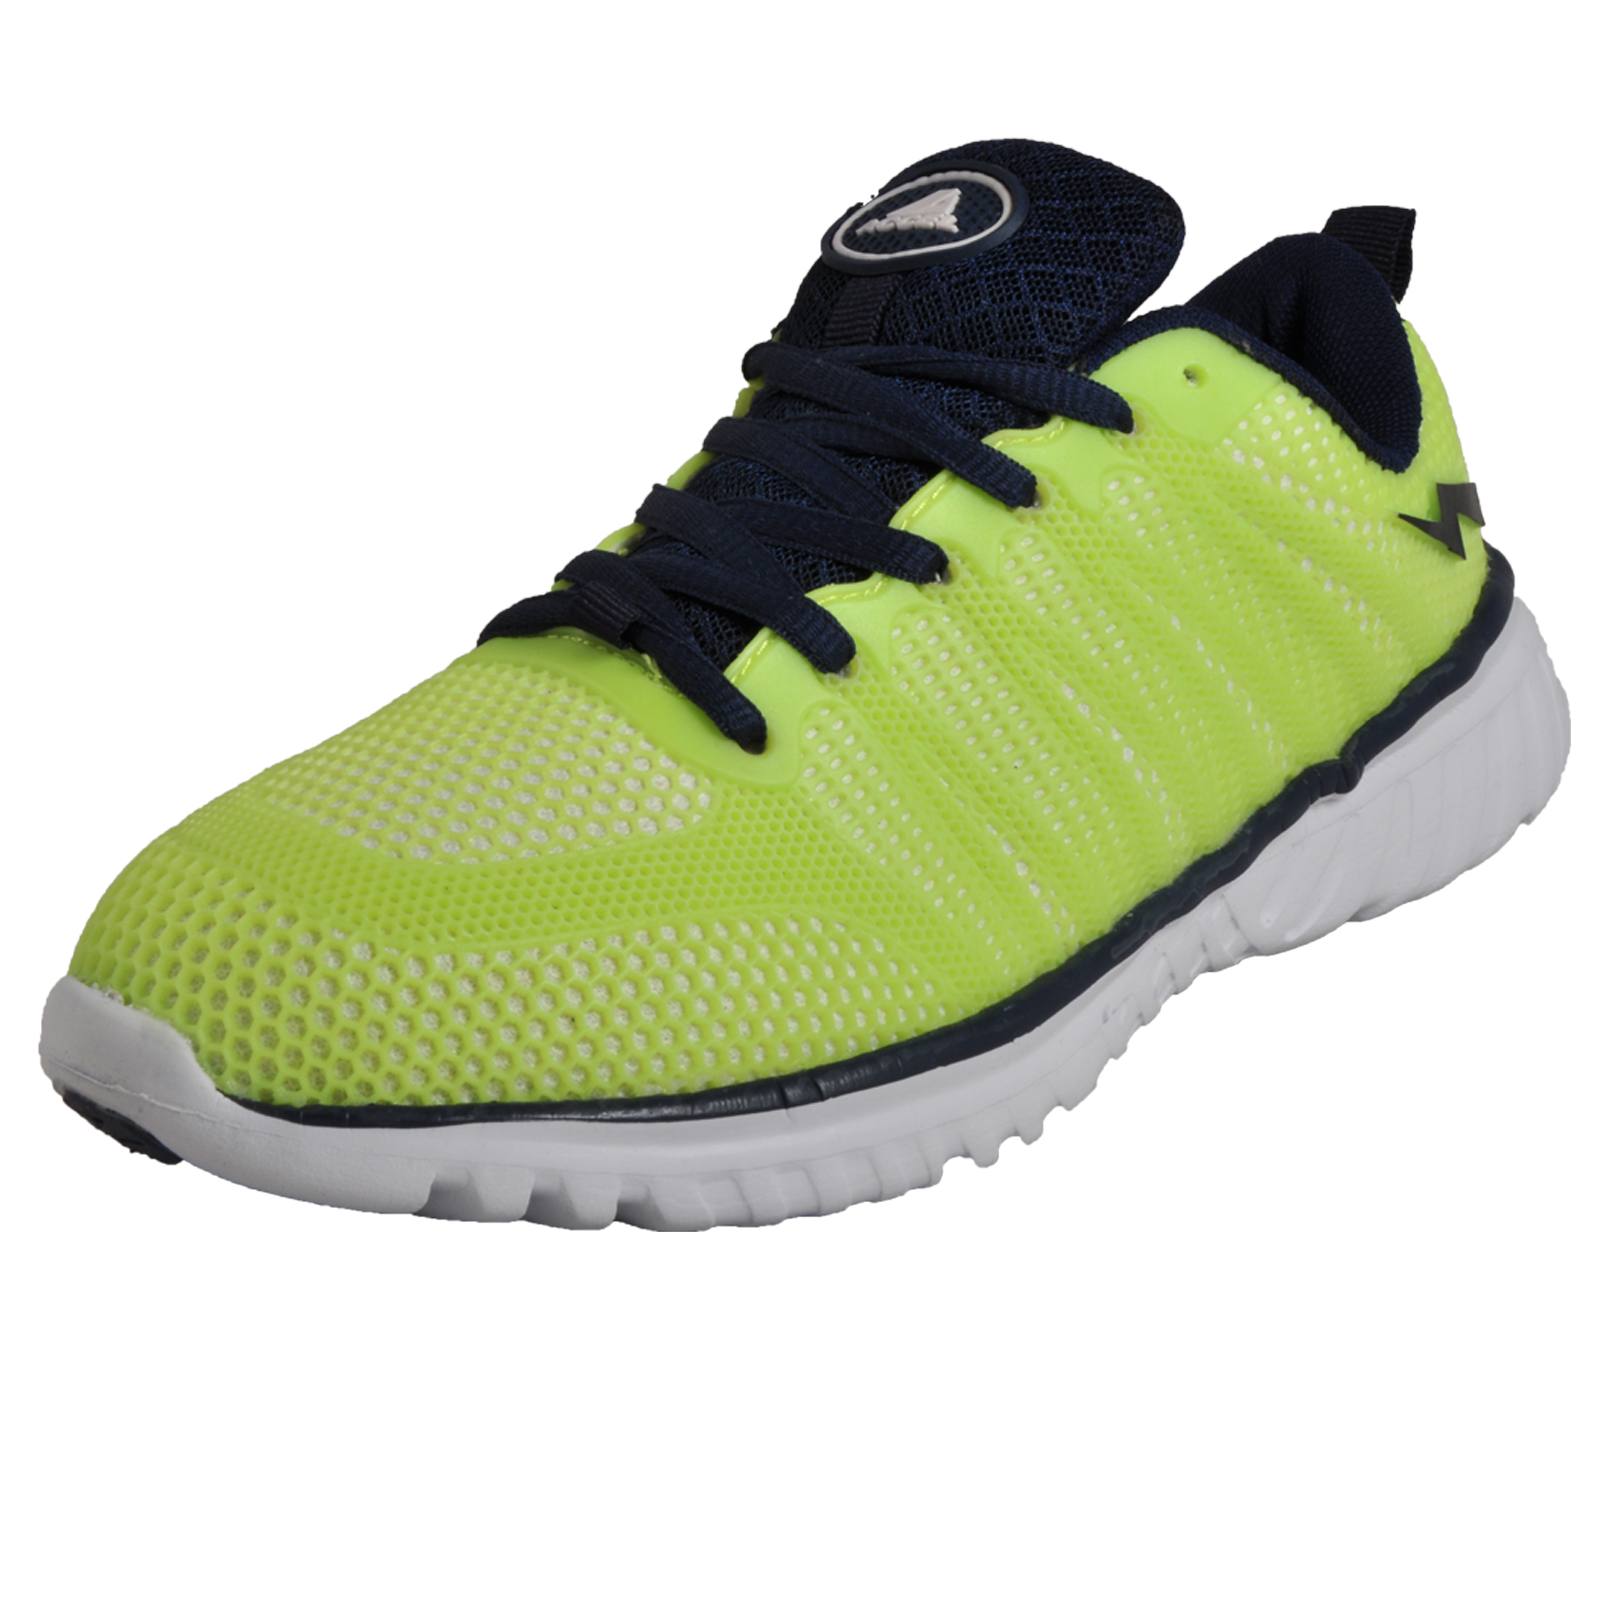 the best attitude f0416 48034 Airtech Accel Superlite Mens Fitness Gym Workout Trainers Lime